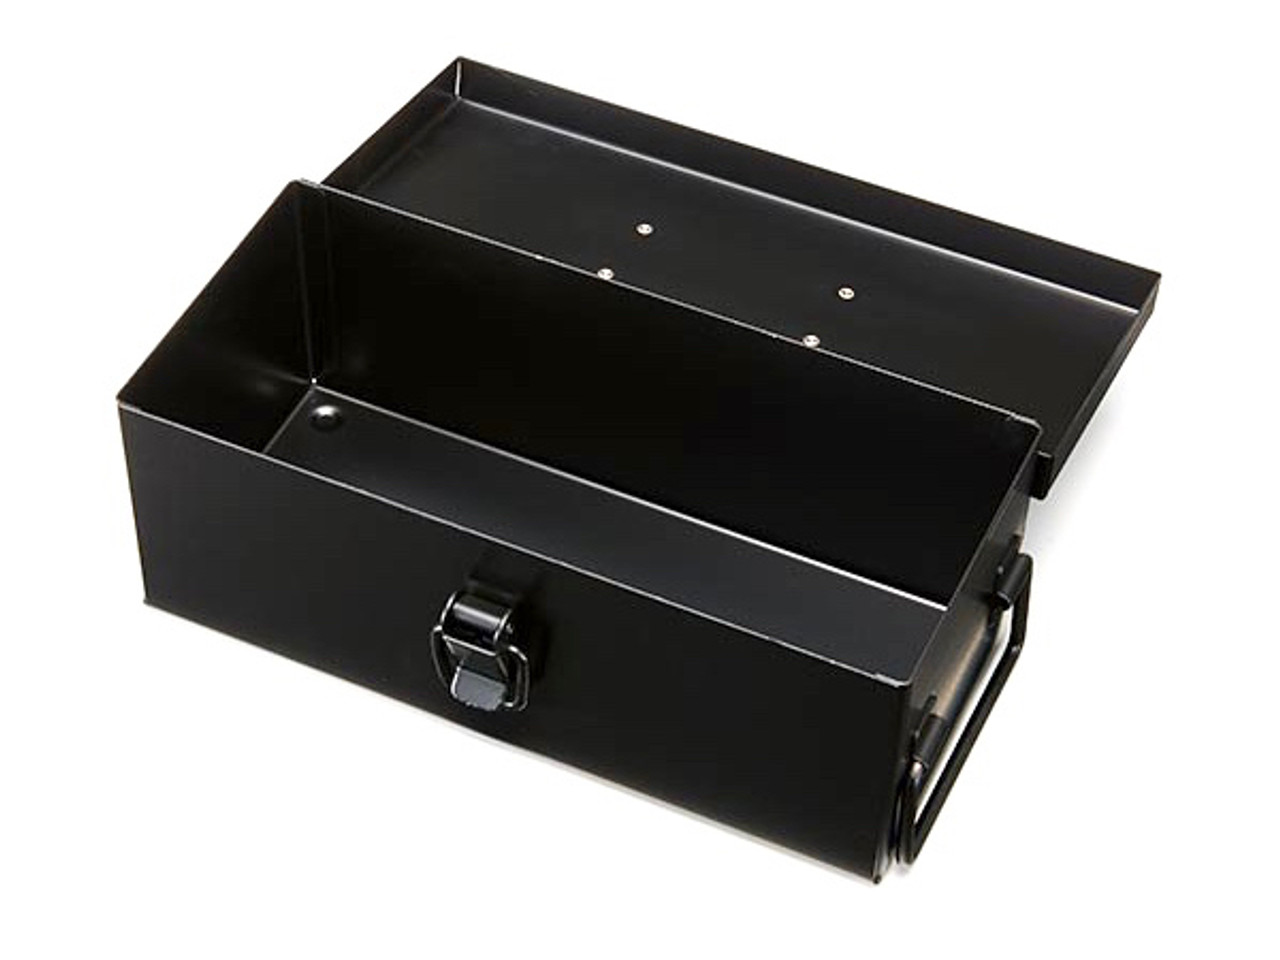 STI Steel Storage Box Medium STSG18100230 Open at AVOJDM.com